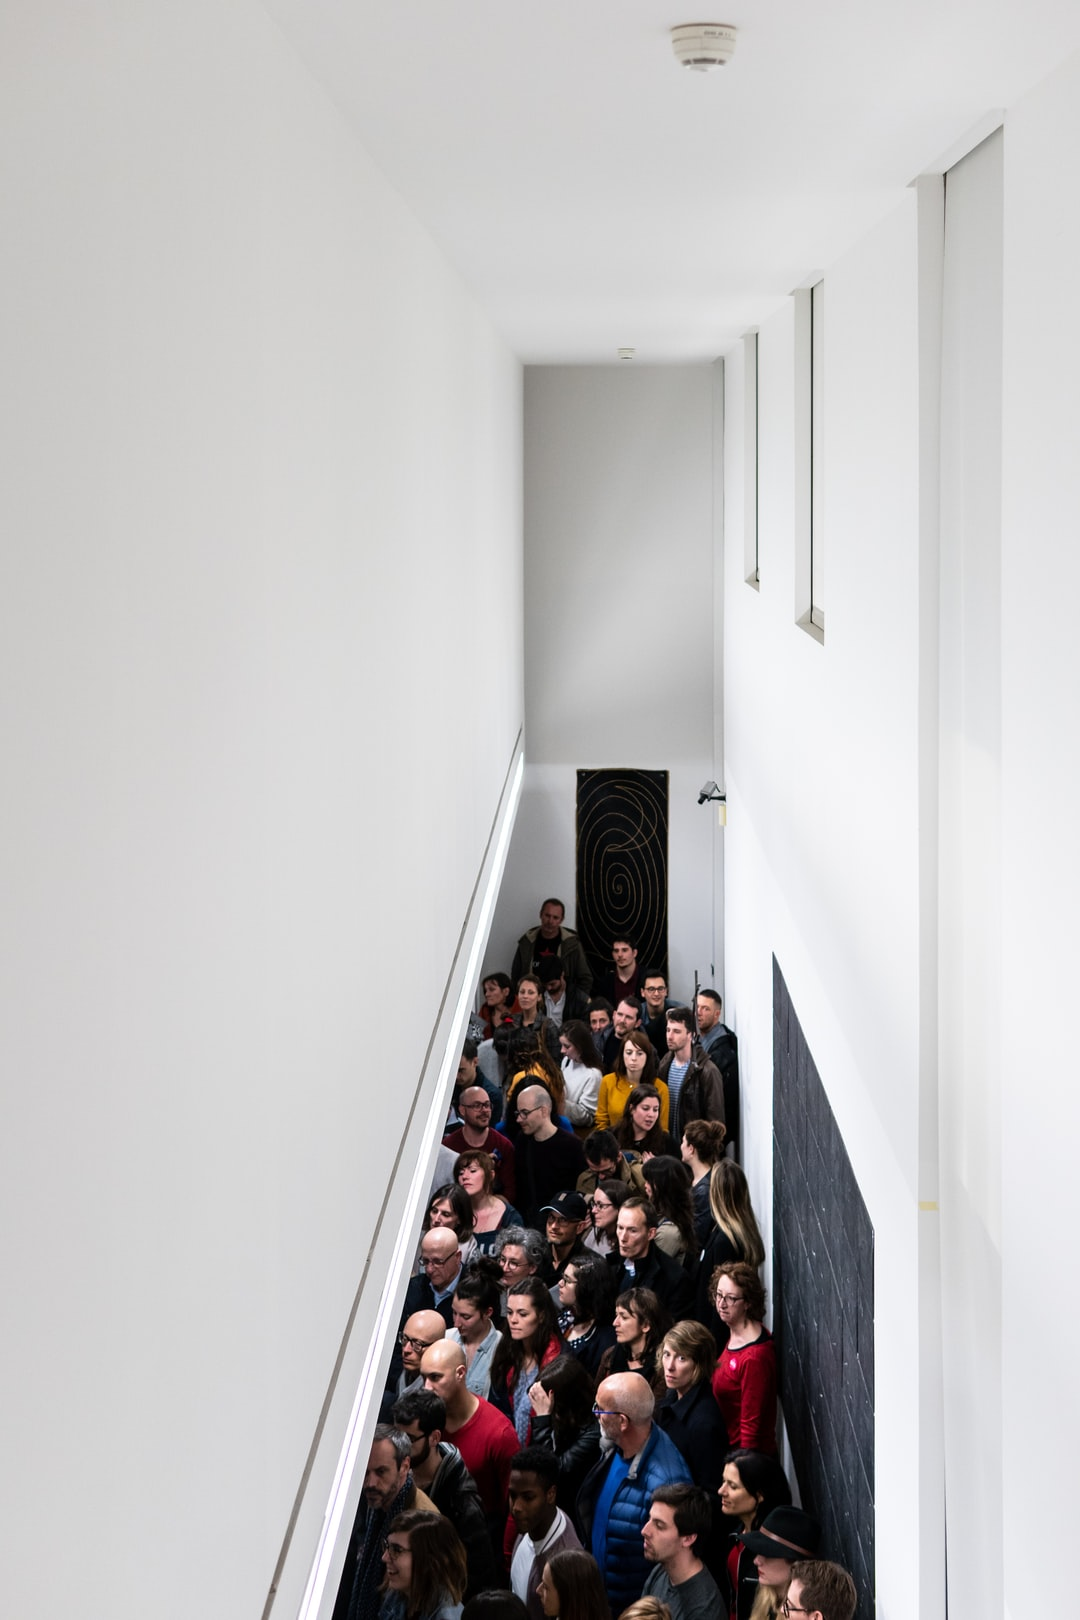 Crowd at a museum